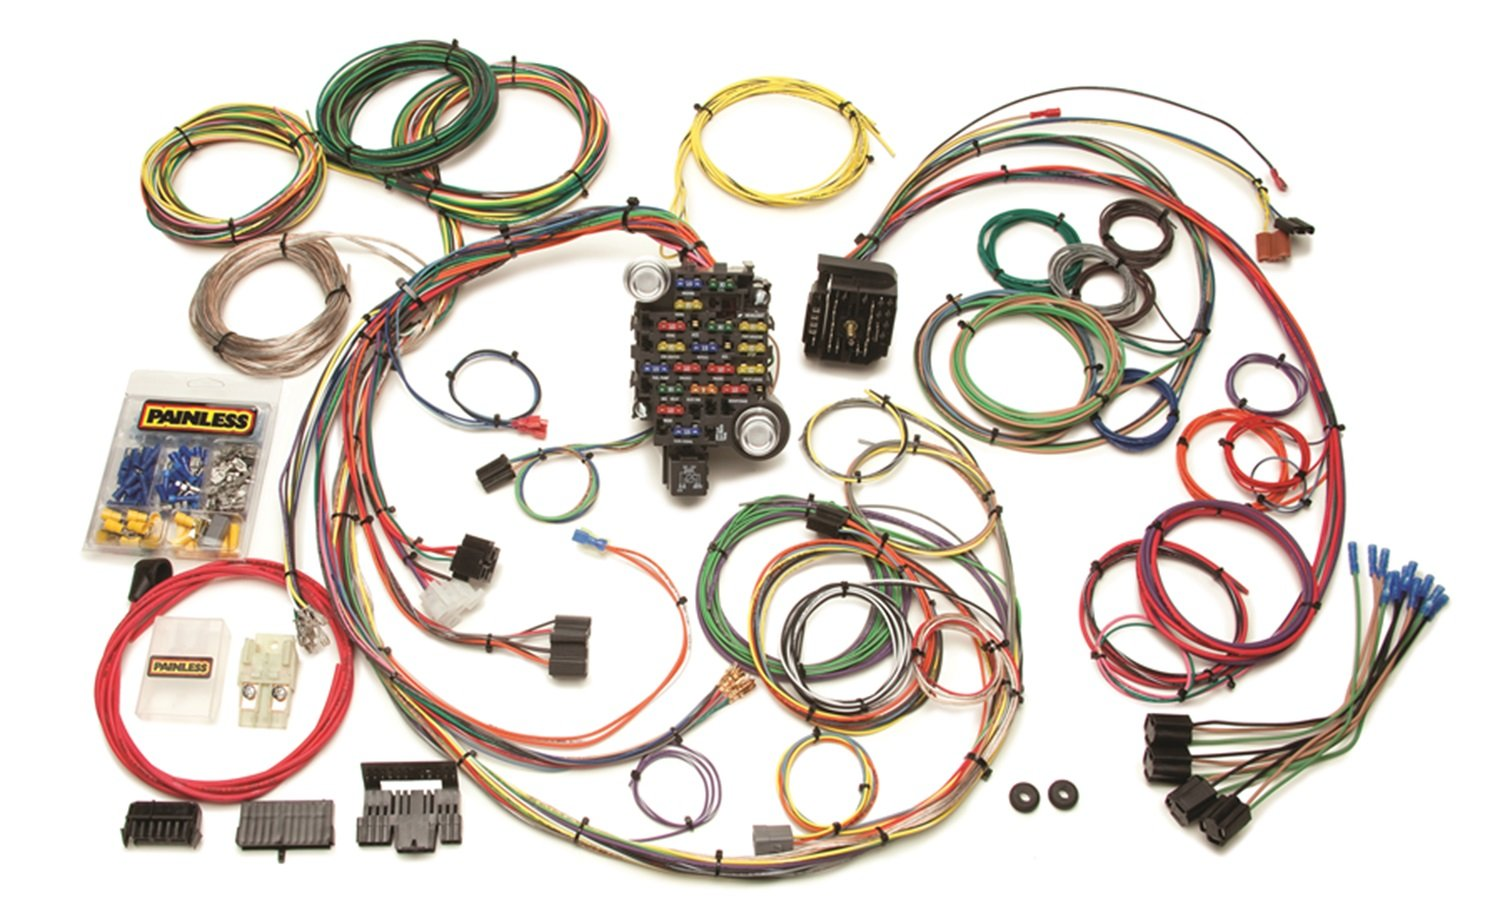 71RvMxx3qDL._SL1500_ amazon com painless 20102 custom wiring harness automotive painless wire harness at bayanpartner.co